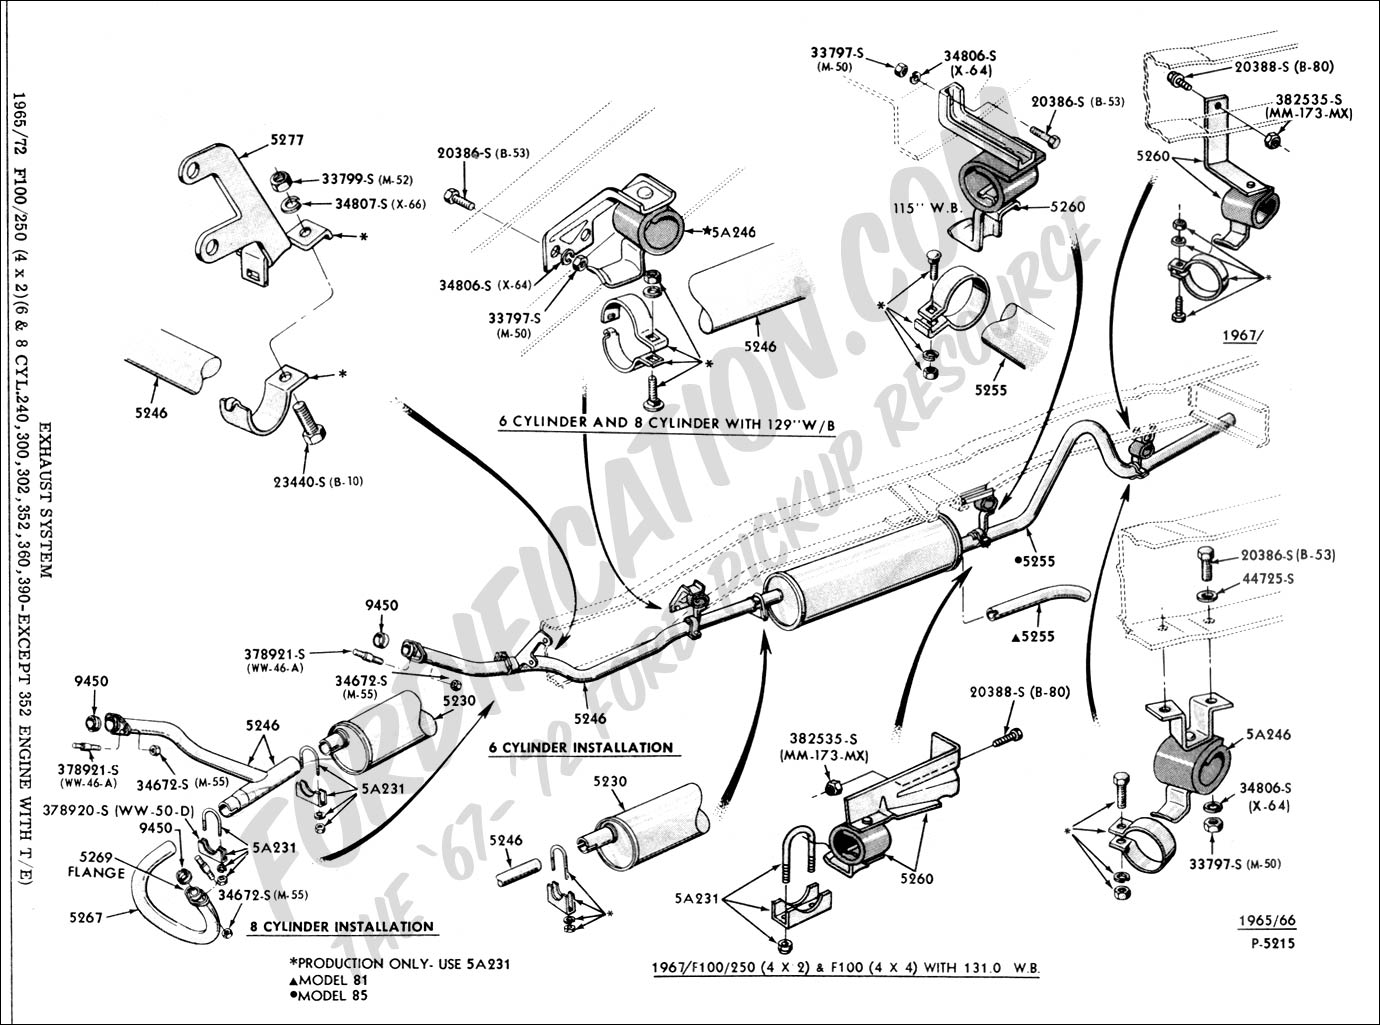 1996 F150 Exhaust Diagram Wiring Online Ford F 150 Engine Sensor 95 Toyota System